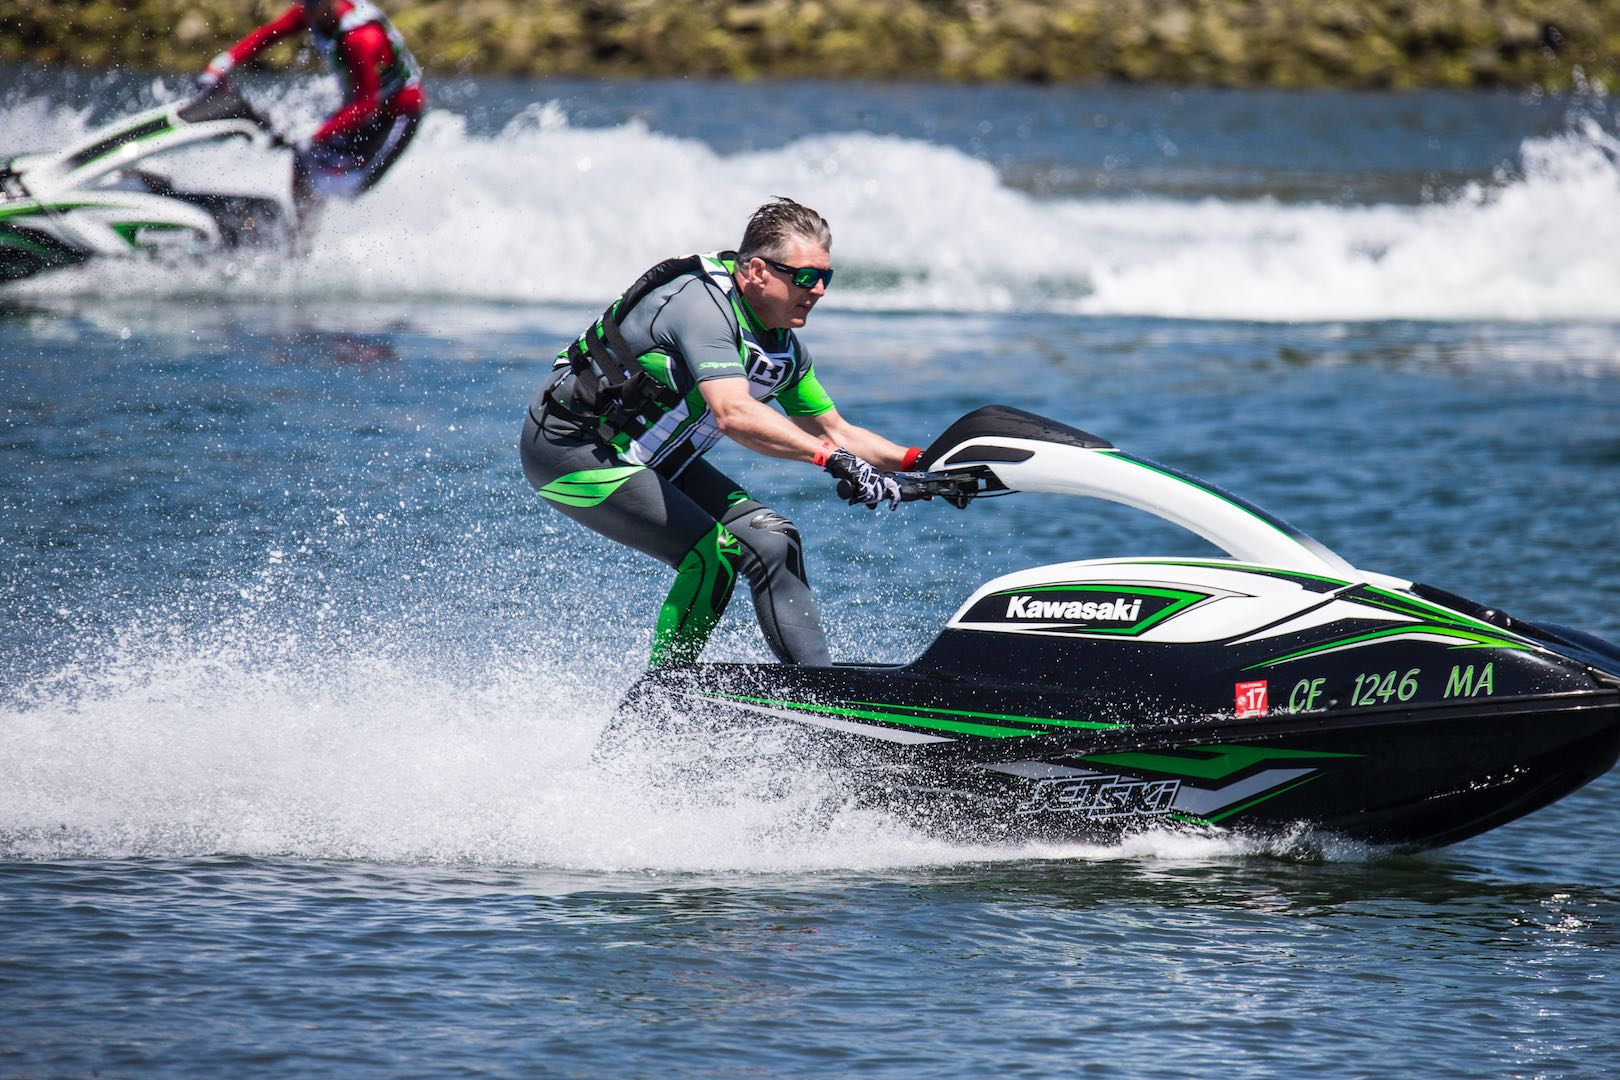 kawasaki sx r jet ski first ride review 14 fast facts video. Black Bedroom Furniture Sets. Home Design Ideas